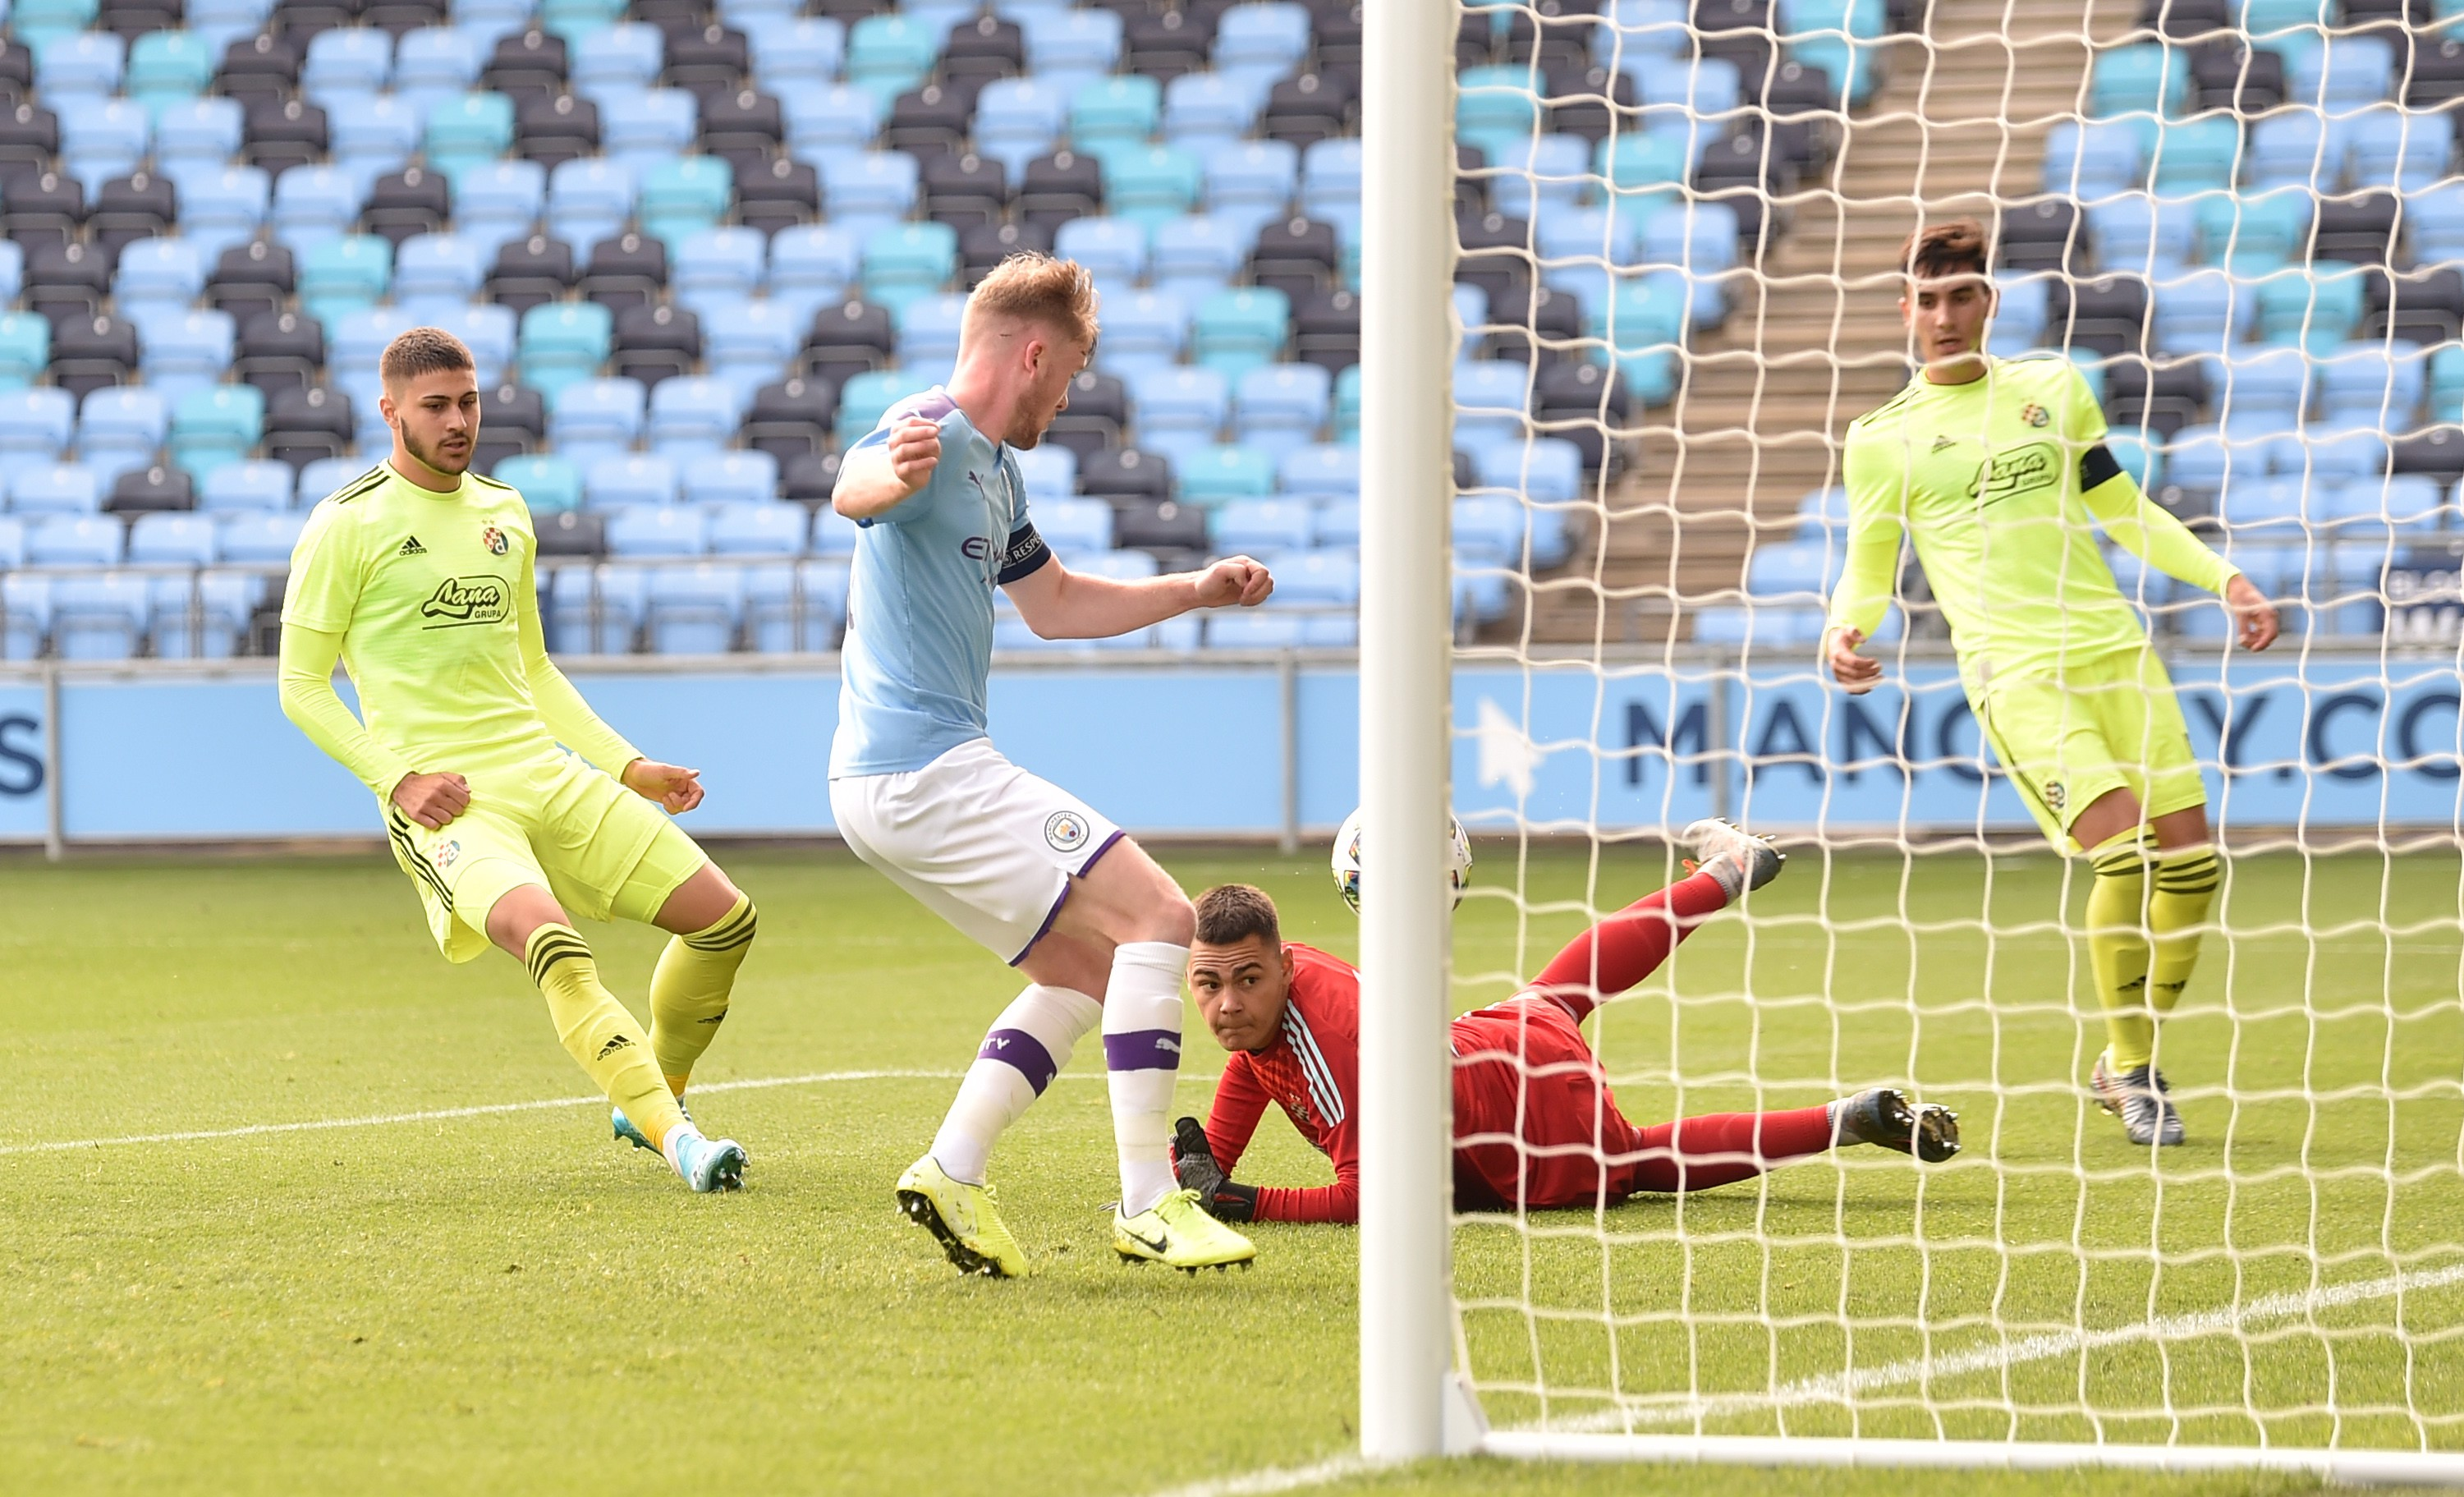 ON TARGET : Tommy Doyle strikes to fire City ahead